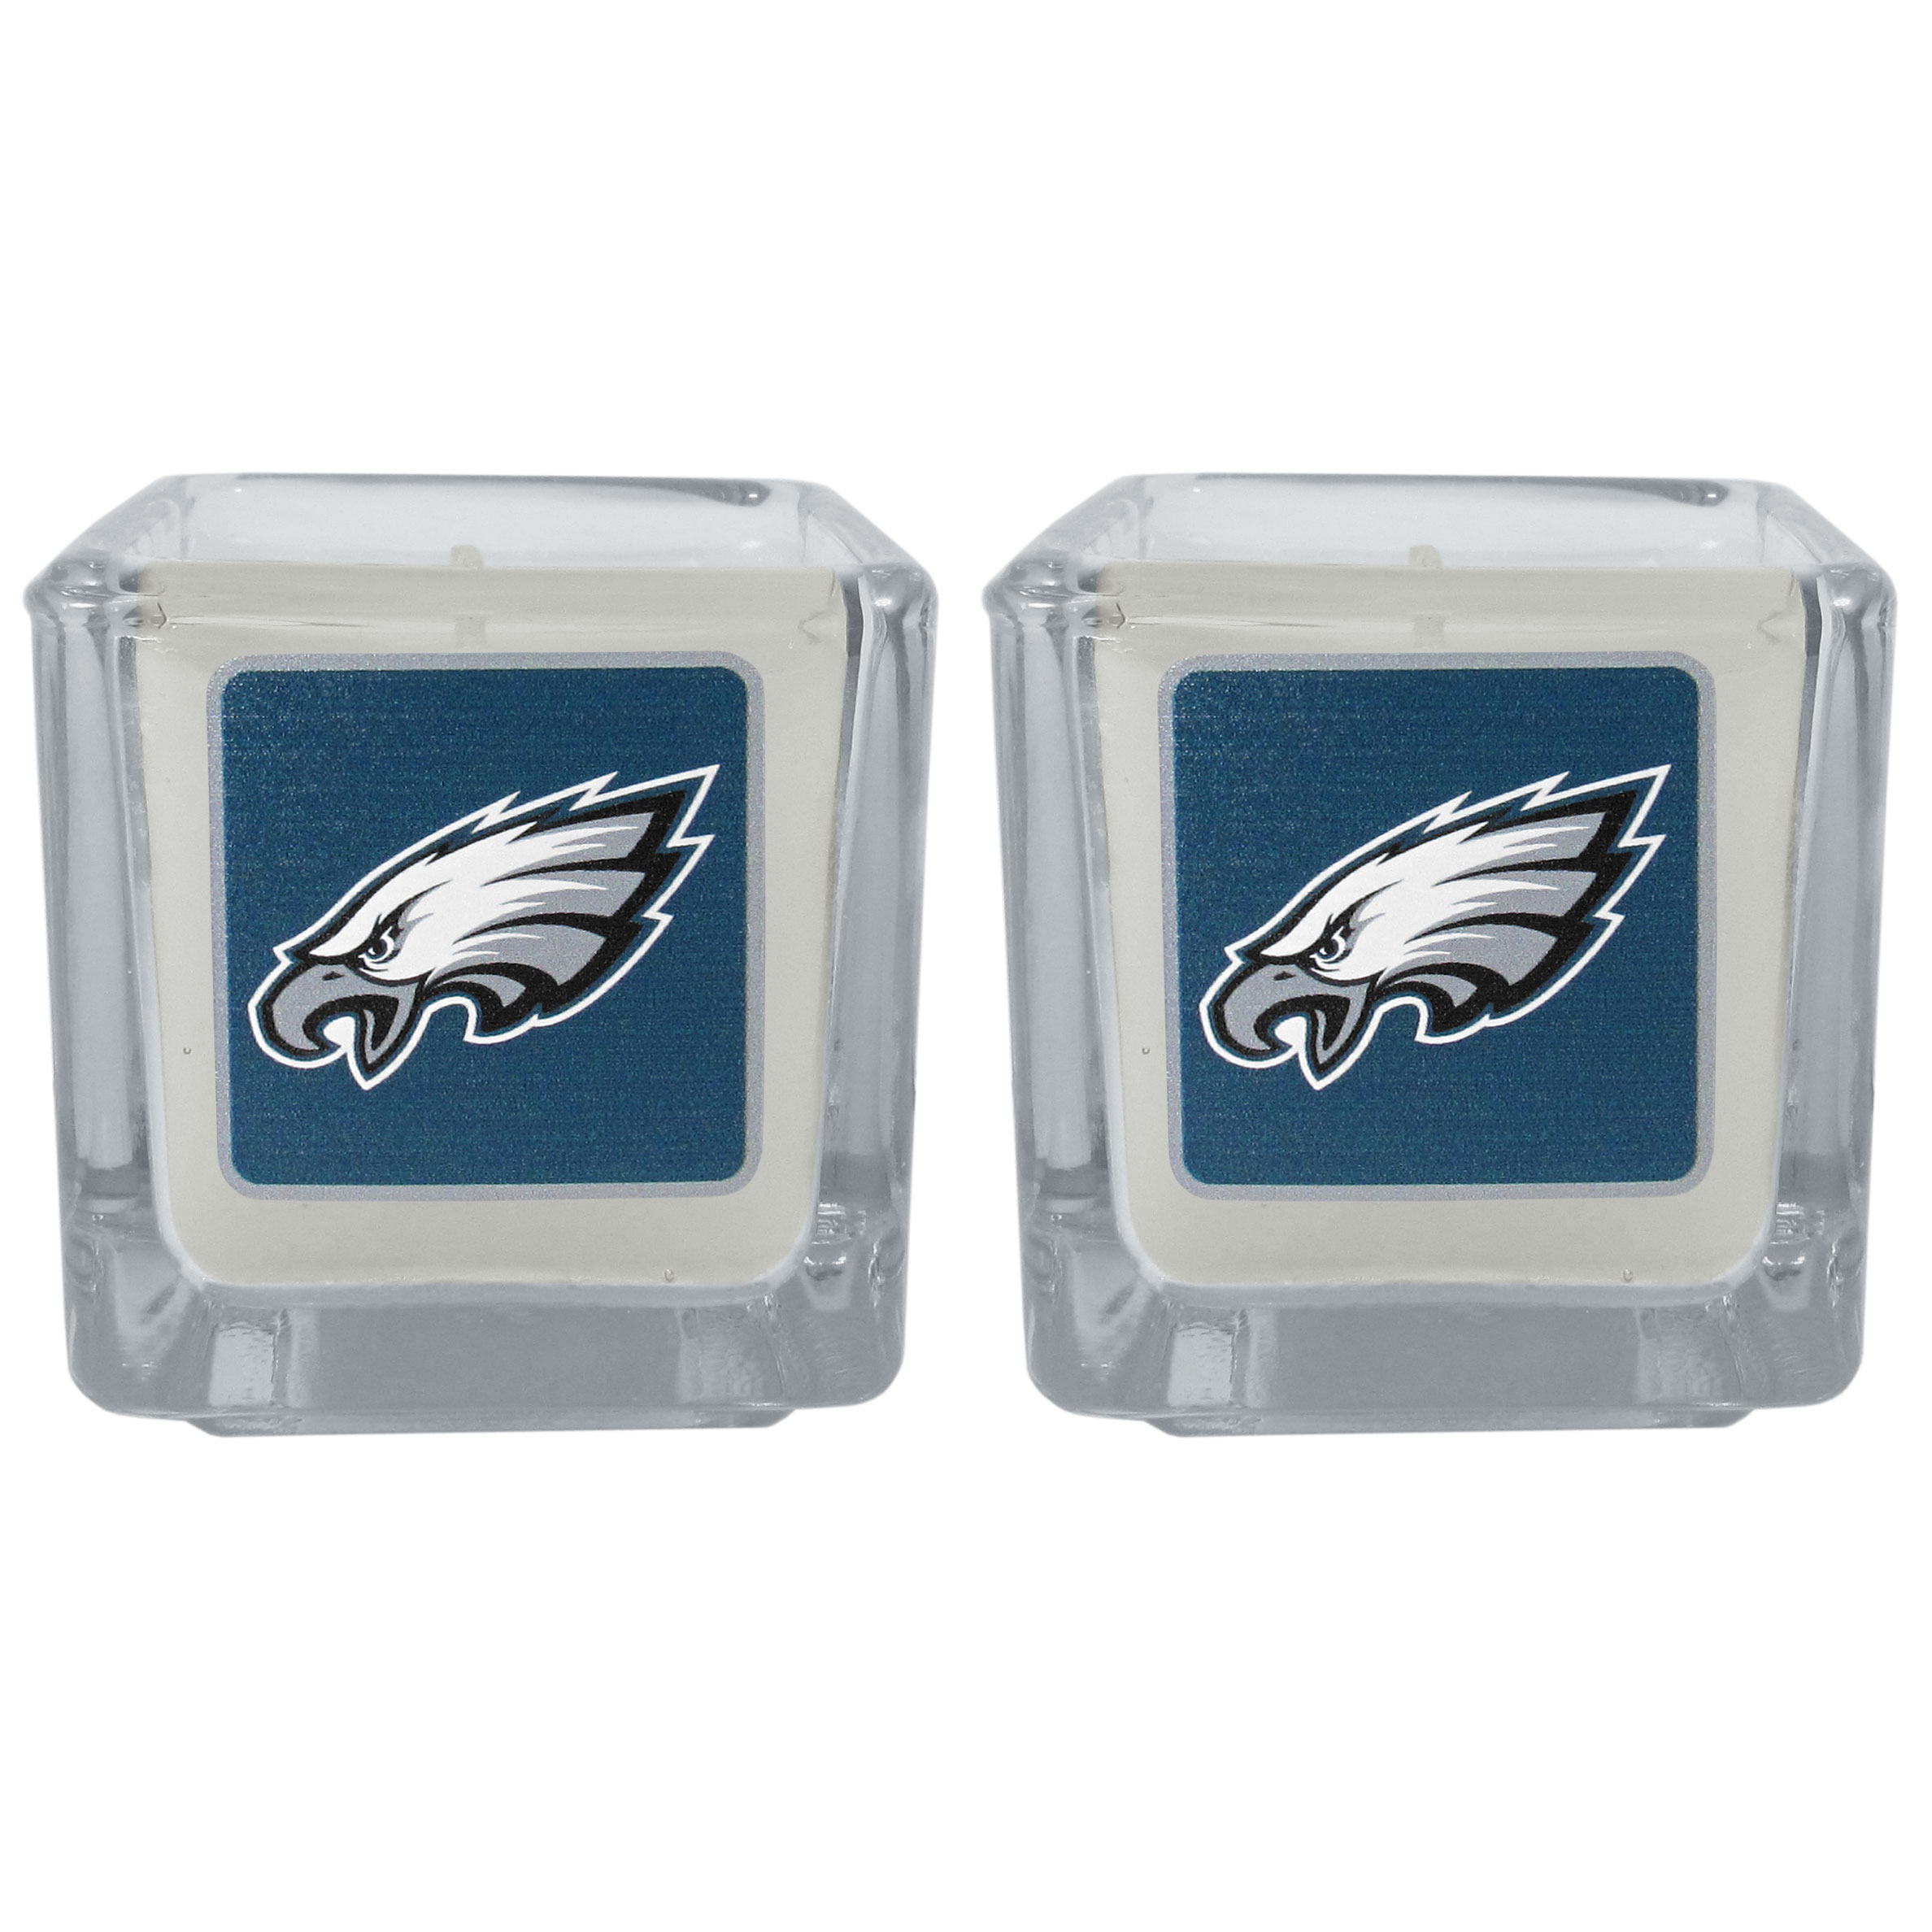 Philadelphia Eagles Graphics Candle Set - Our candle set features 2 lightly vanilla scented candles with the Philadelphia Eagles logo expertly printed on front. The candles are 2 inches tall in the votive style.